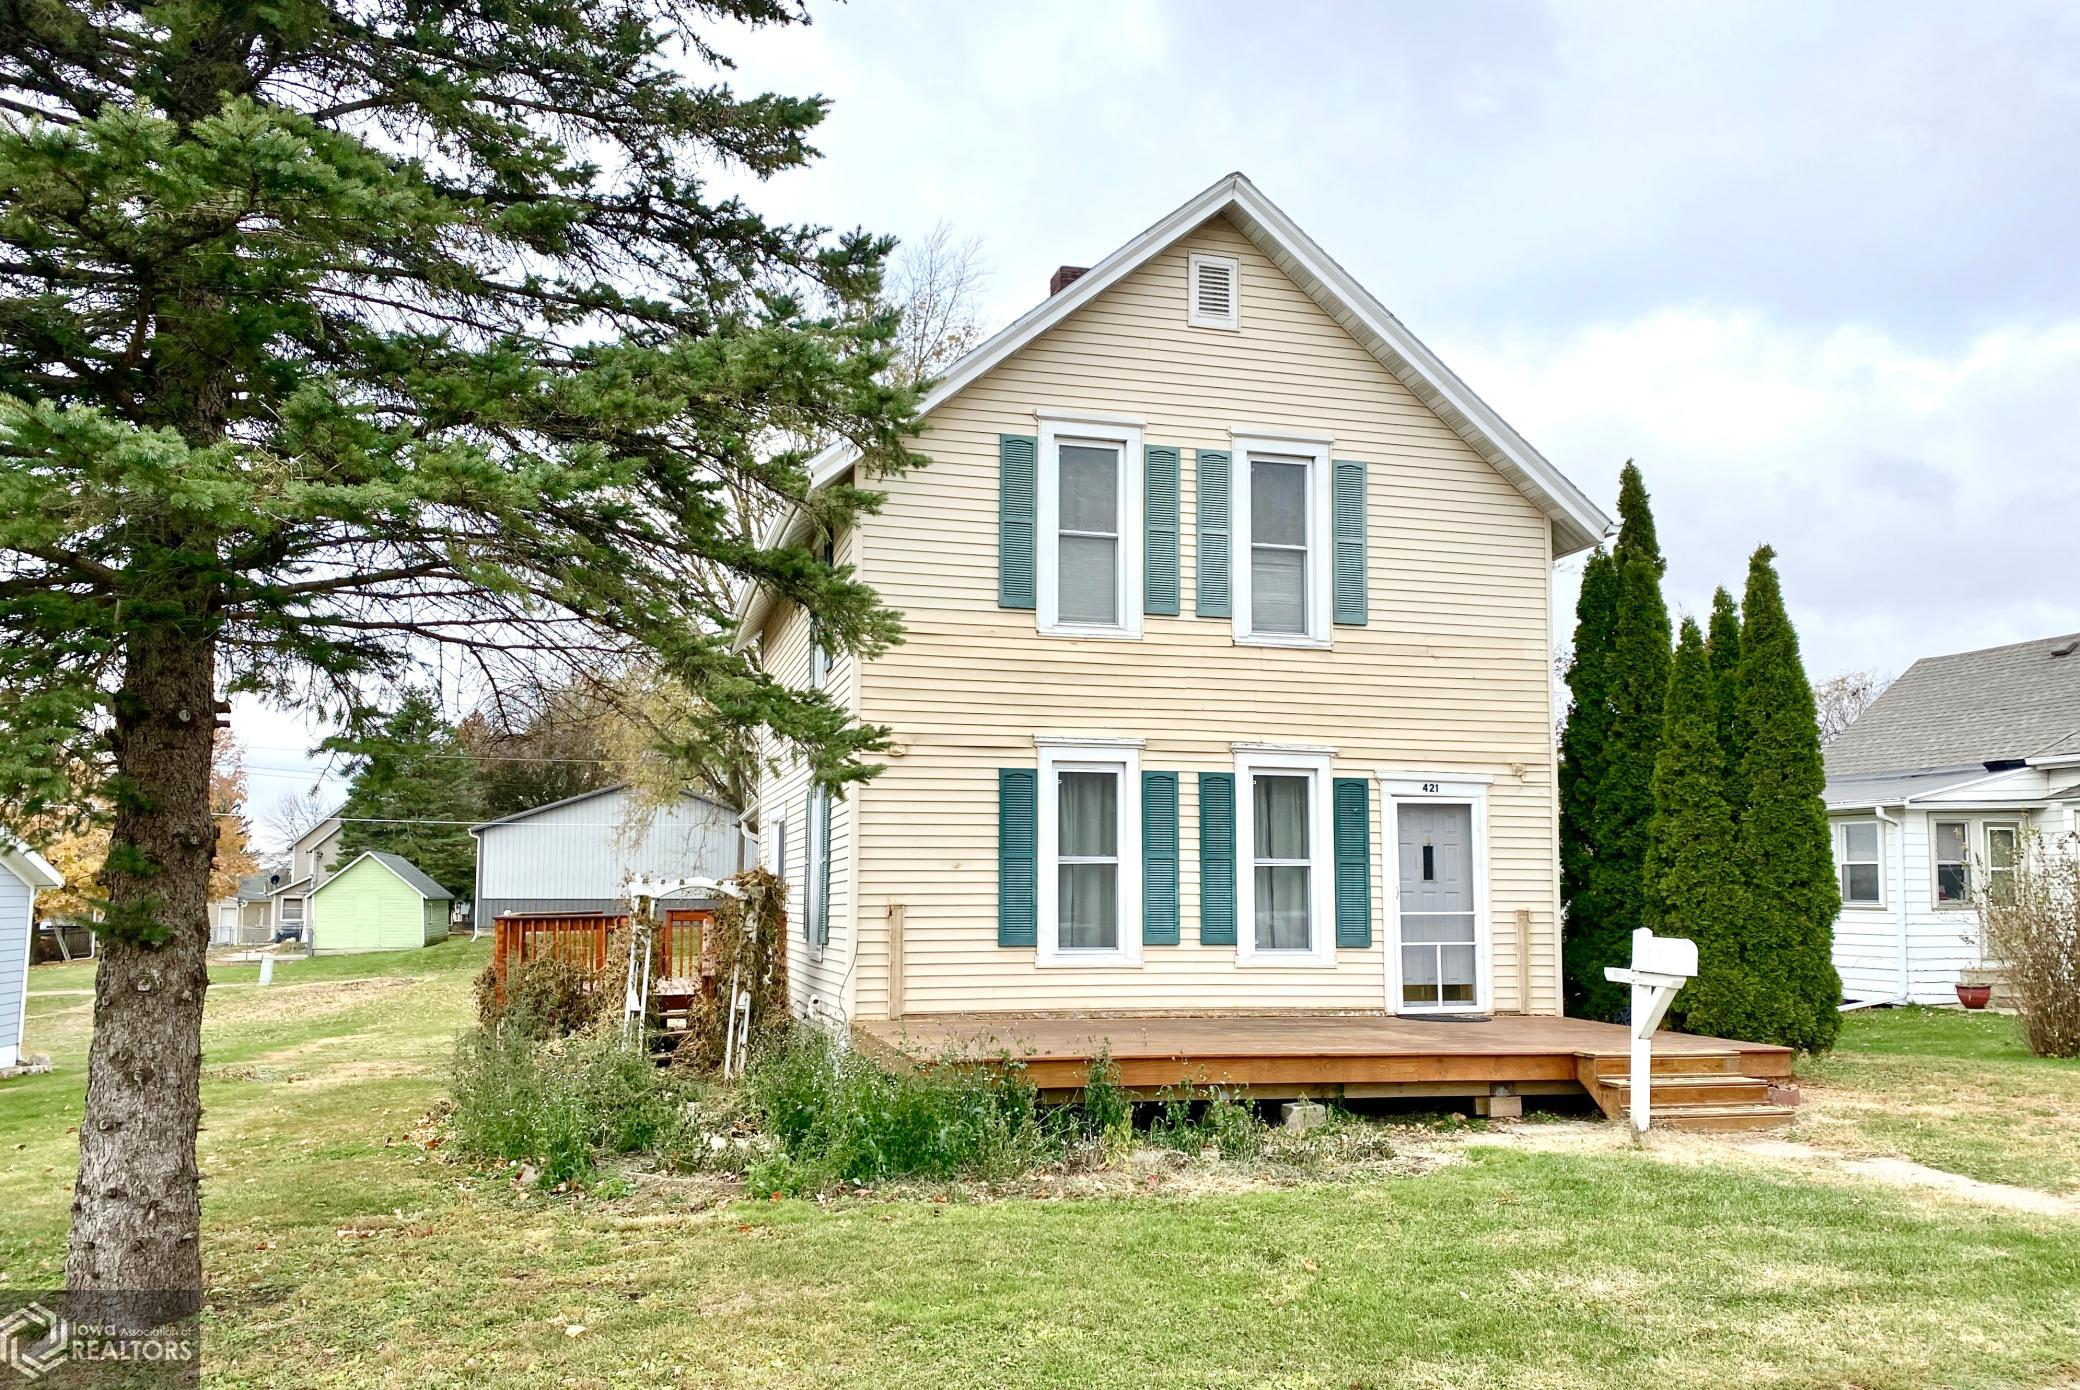 421 Main, Grinnell, Iowa 50112-5719, 3 Bedrooms Bedrooms, ,1 BathroomBathrooms,Single Family,For Sale,Main,5680022